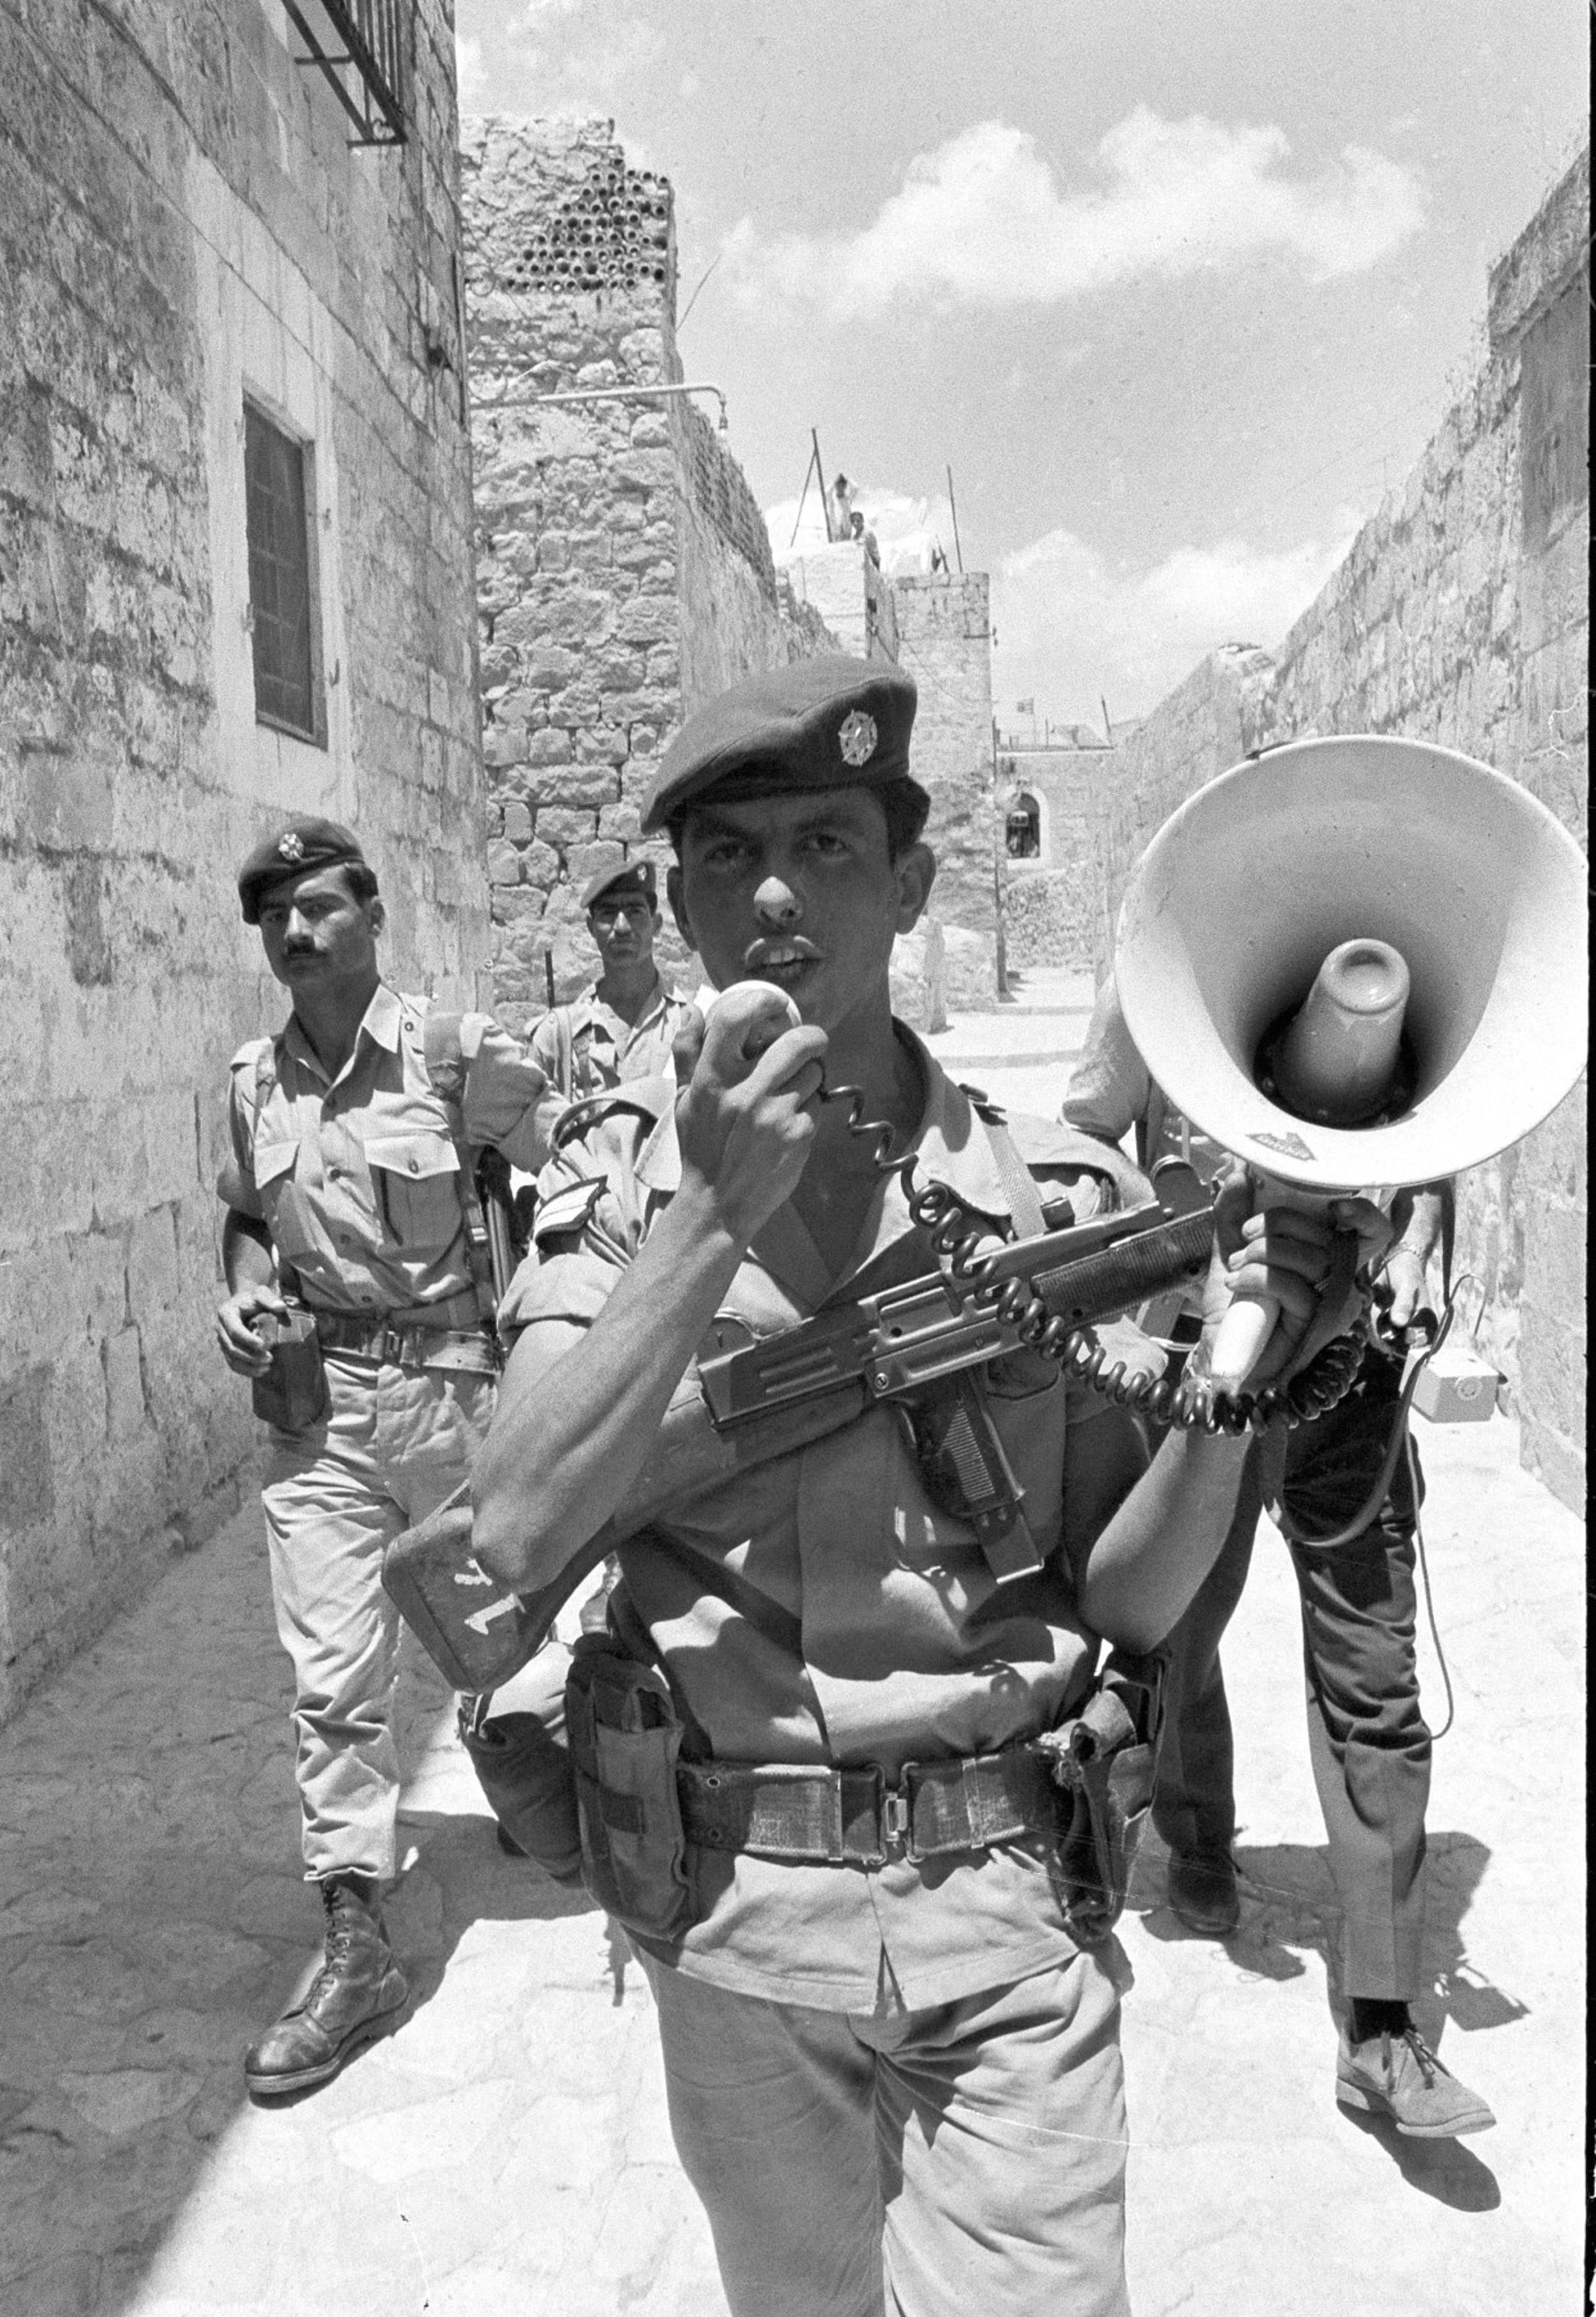 Israeli border police announce the start of a curfew in the sector of Jerusalem formerly held by Jordan, June 26, 1967.